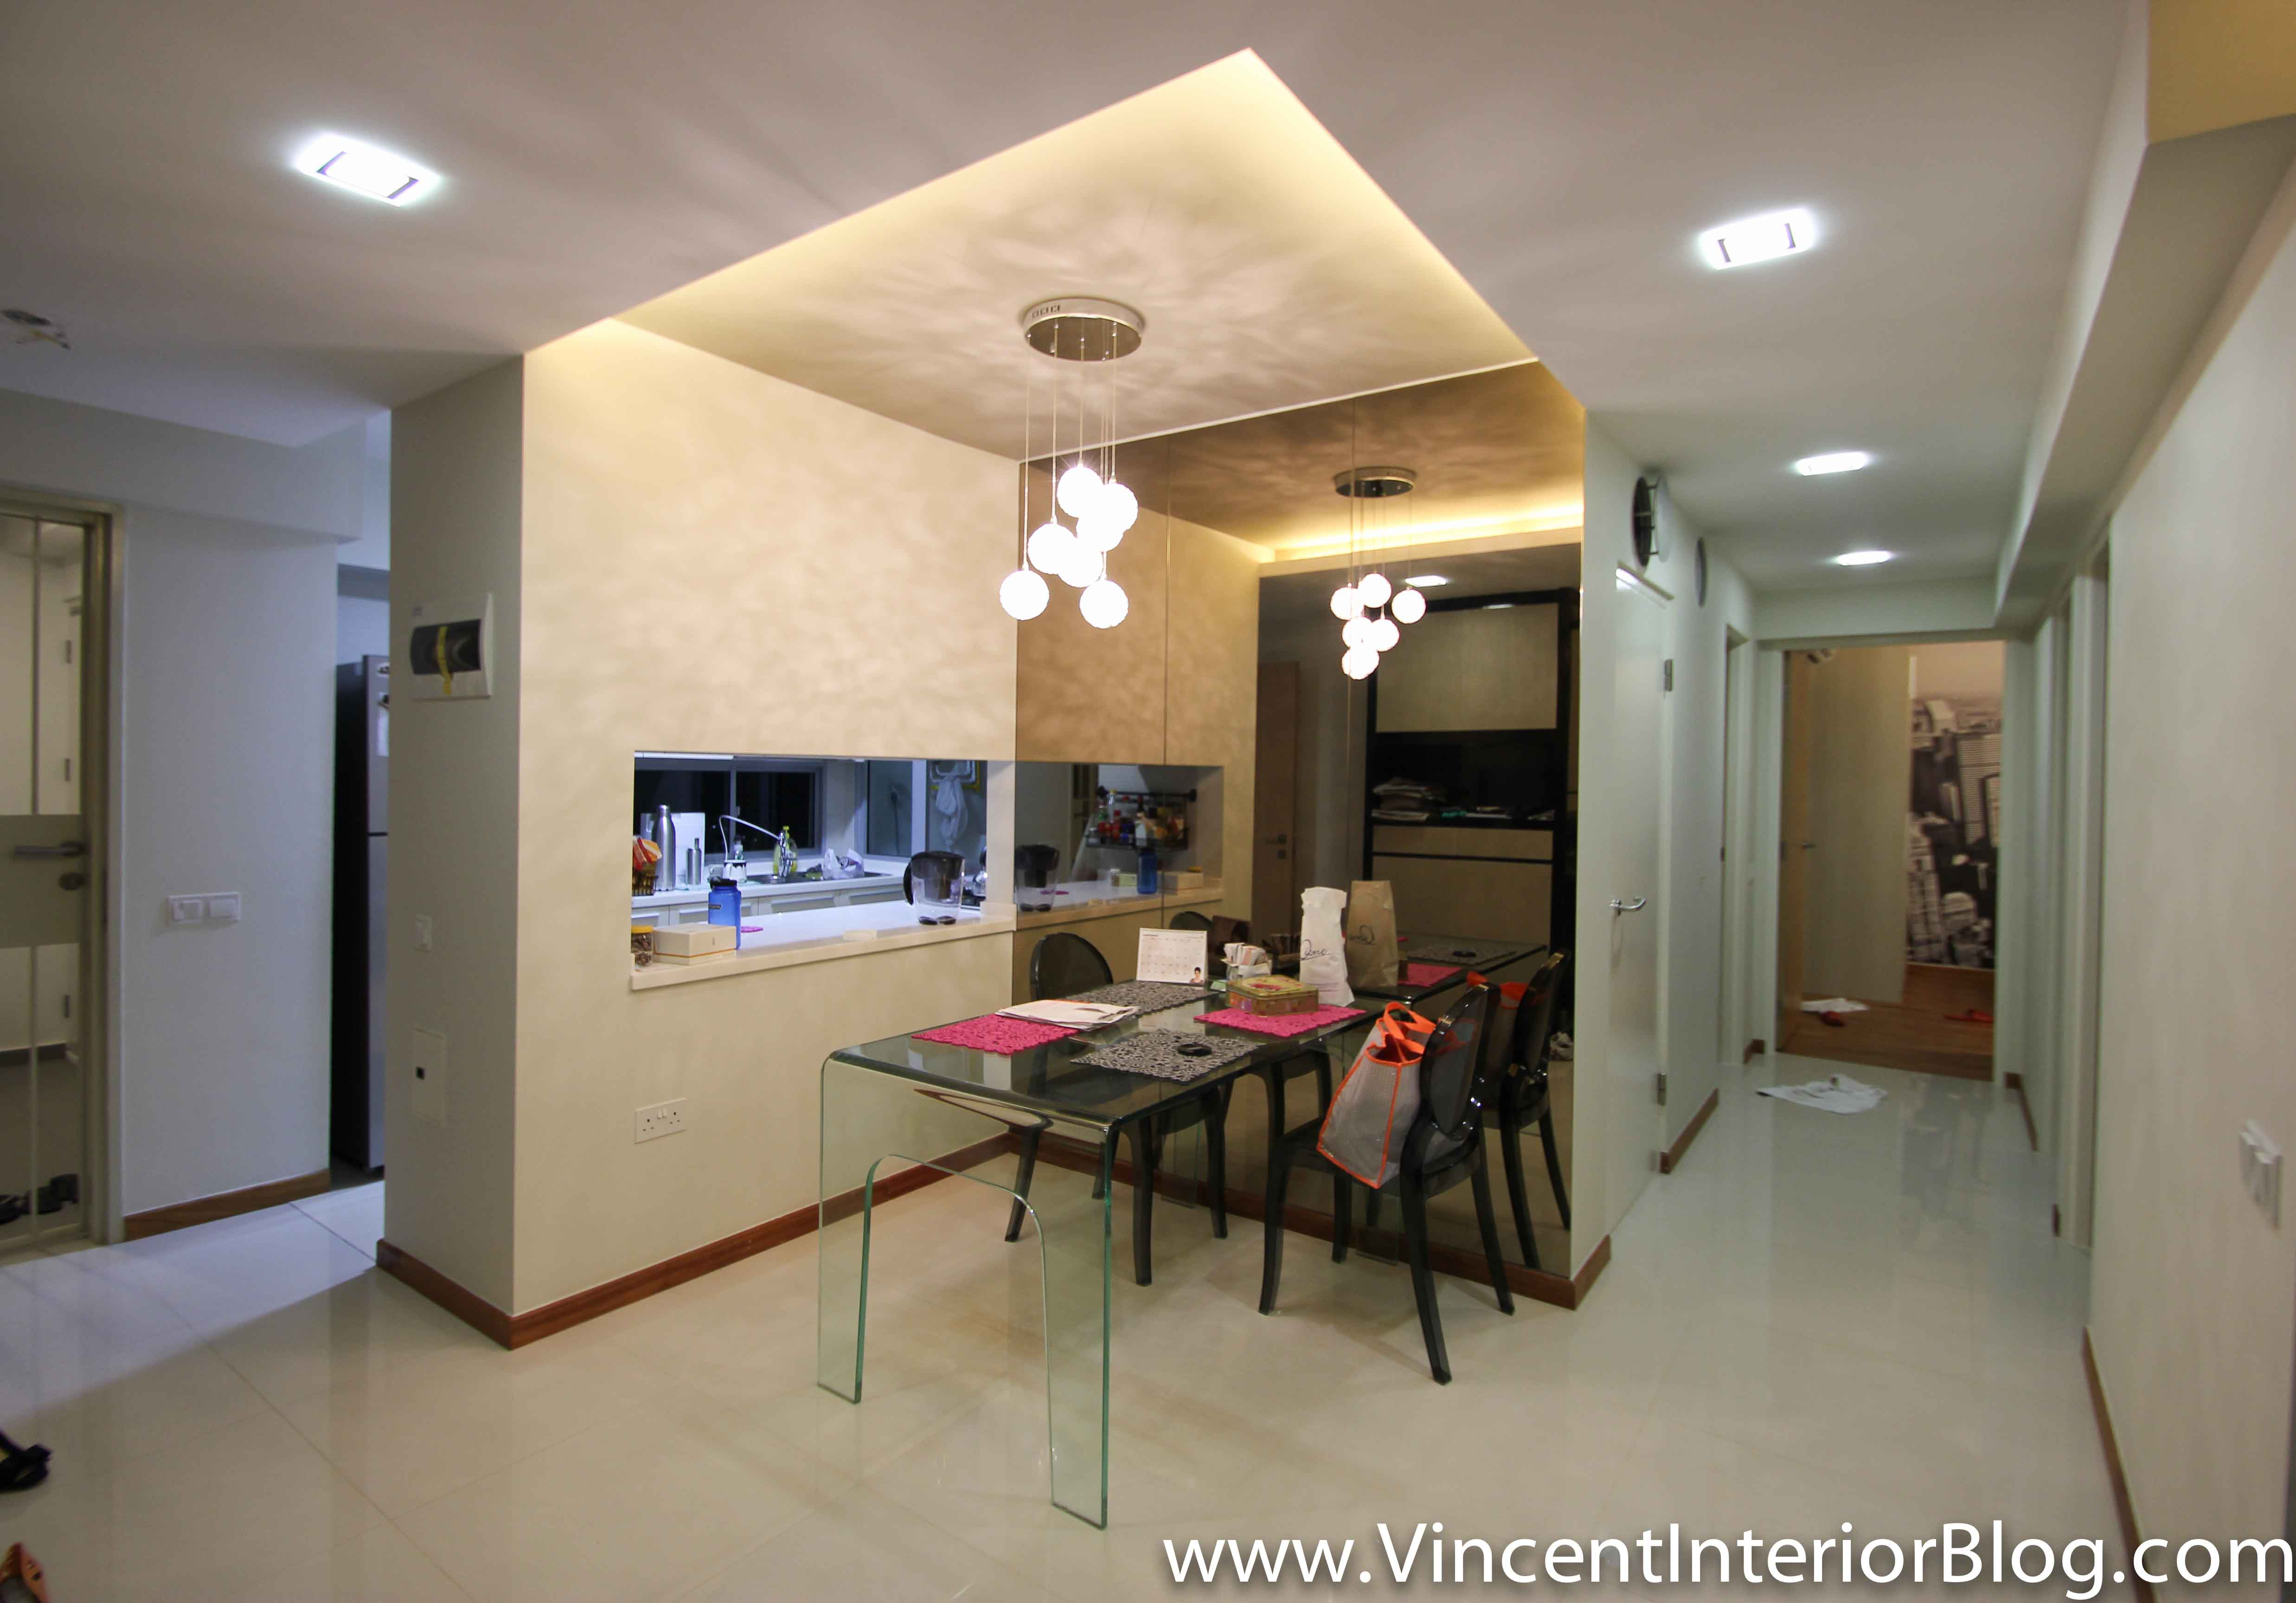 Interior design ideas archives vincent interior blog for Interior design for dining area